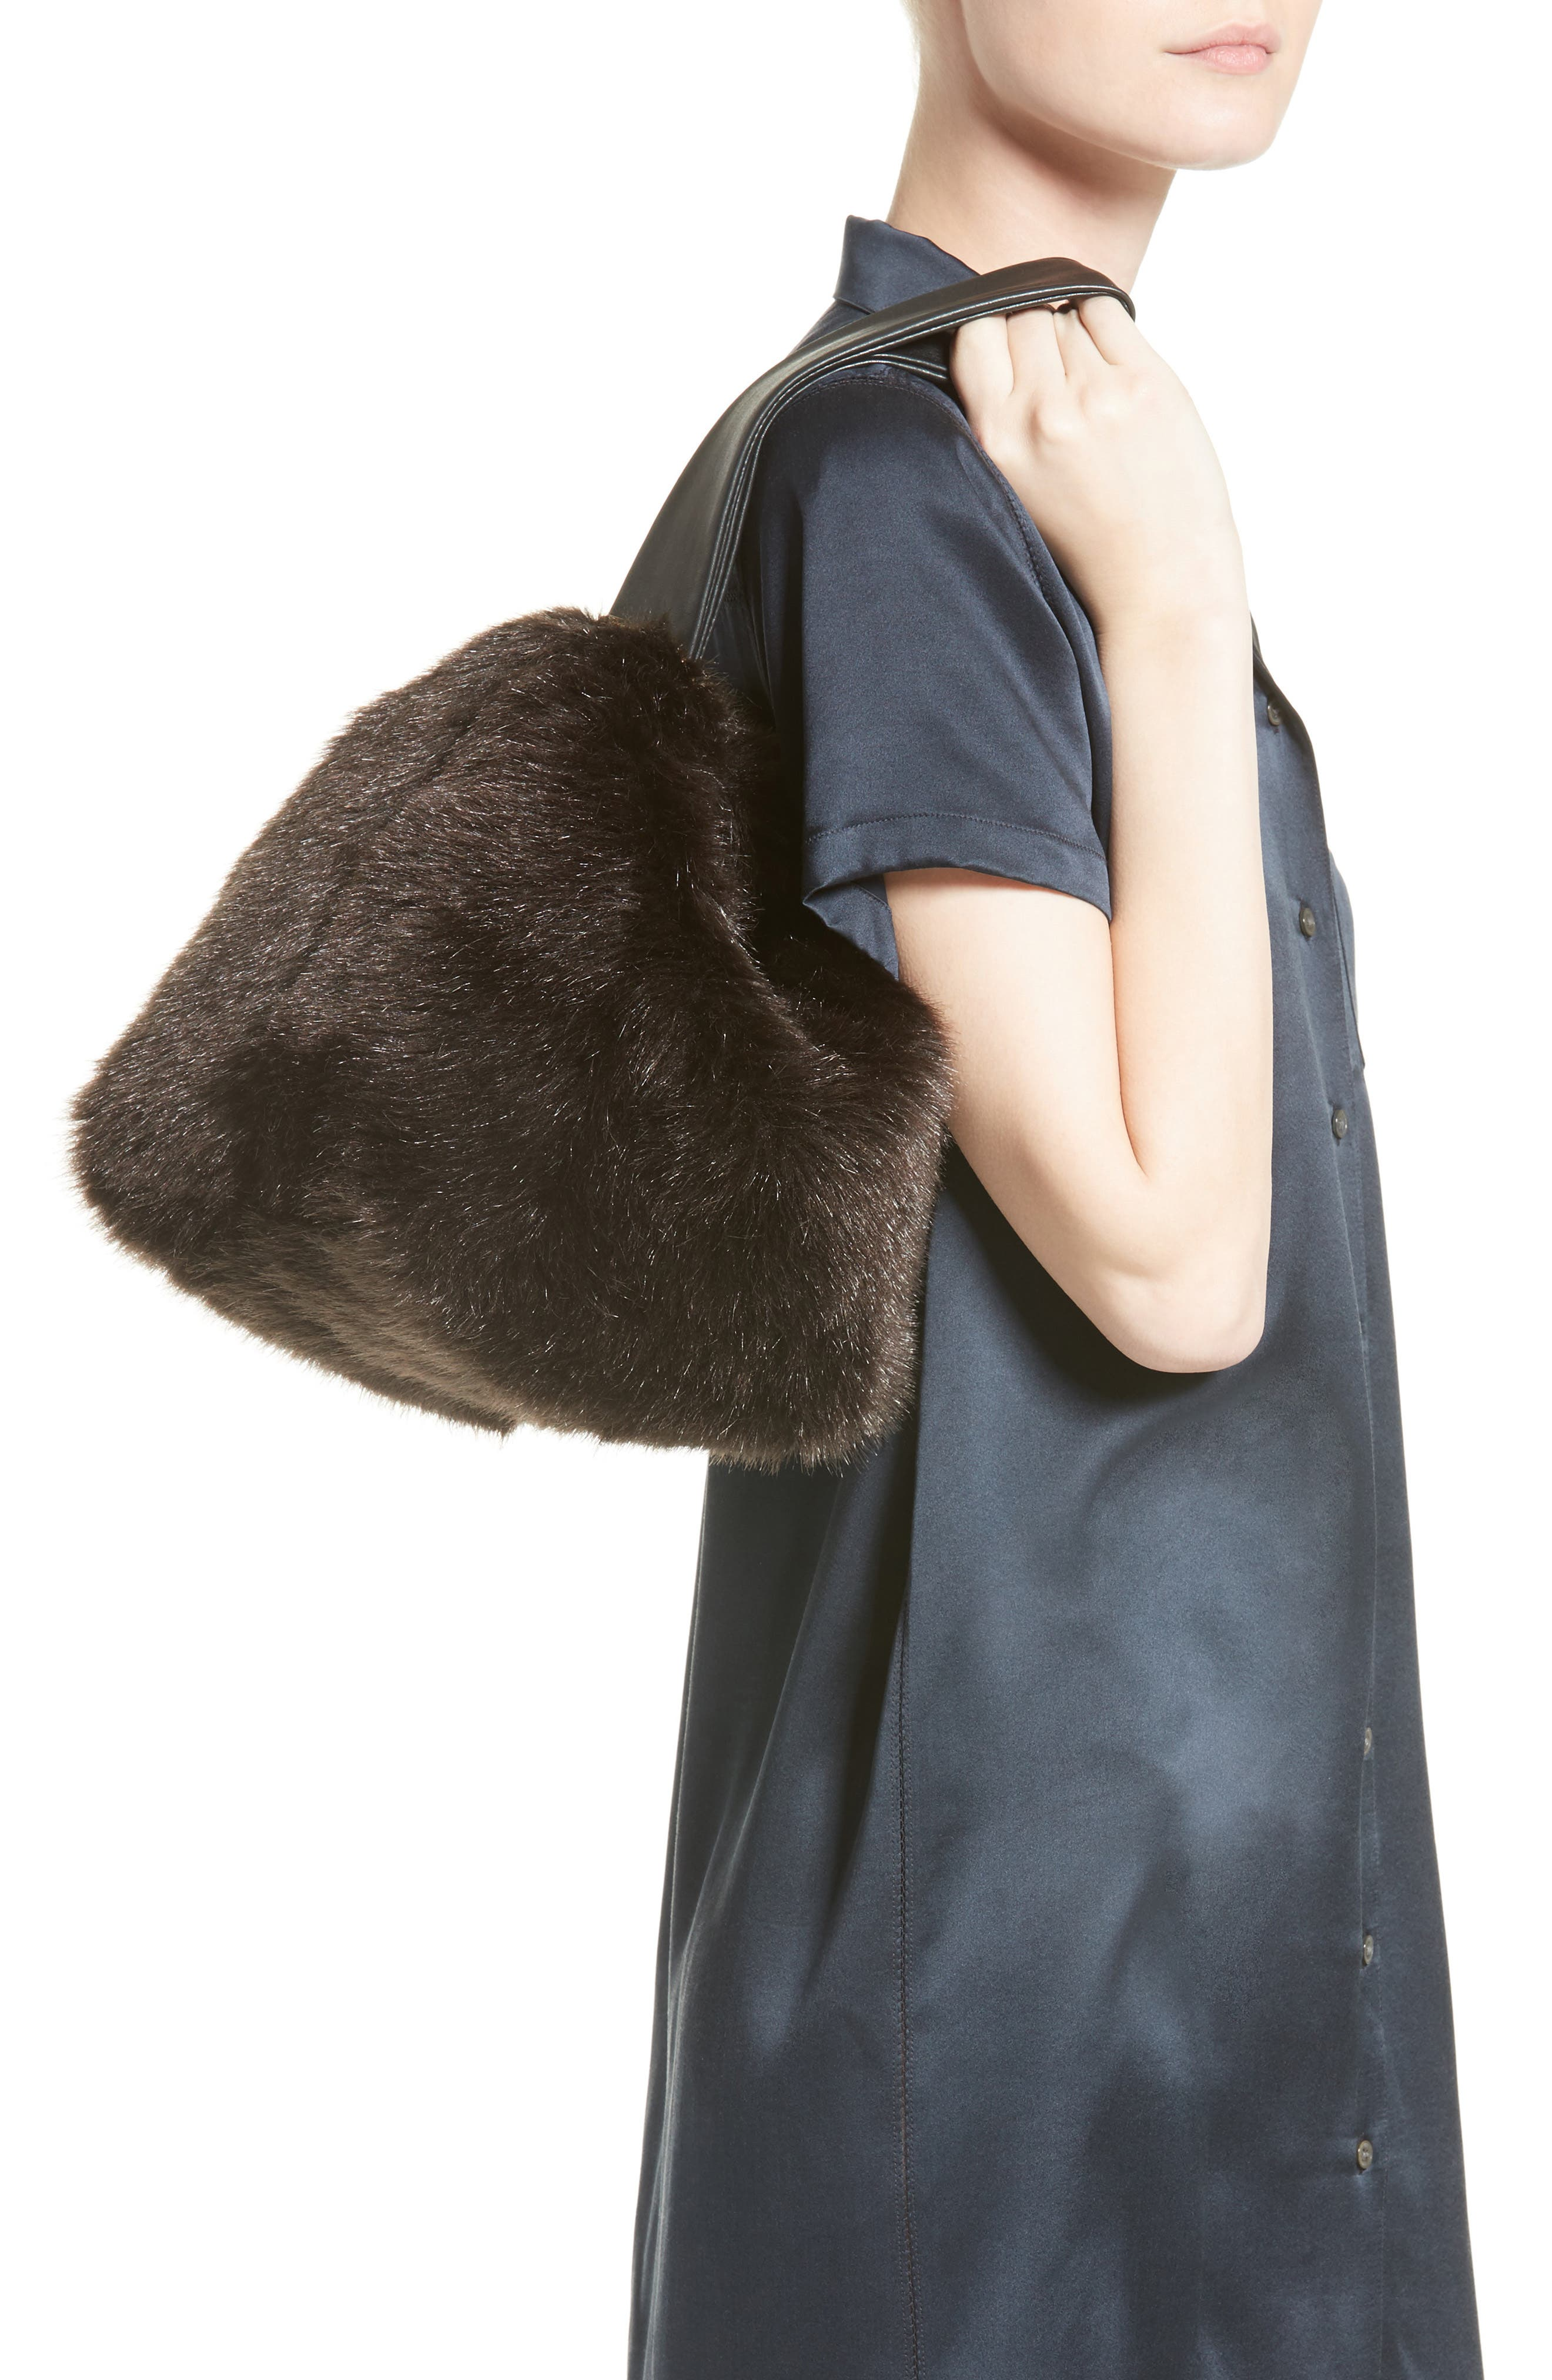 Tissue Pouch Faux Fur Bag,                             Alternate thumbnail 2, color,                             200